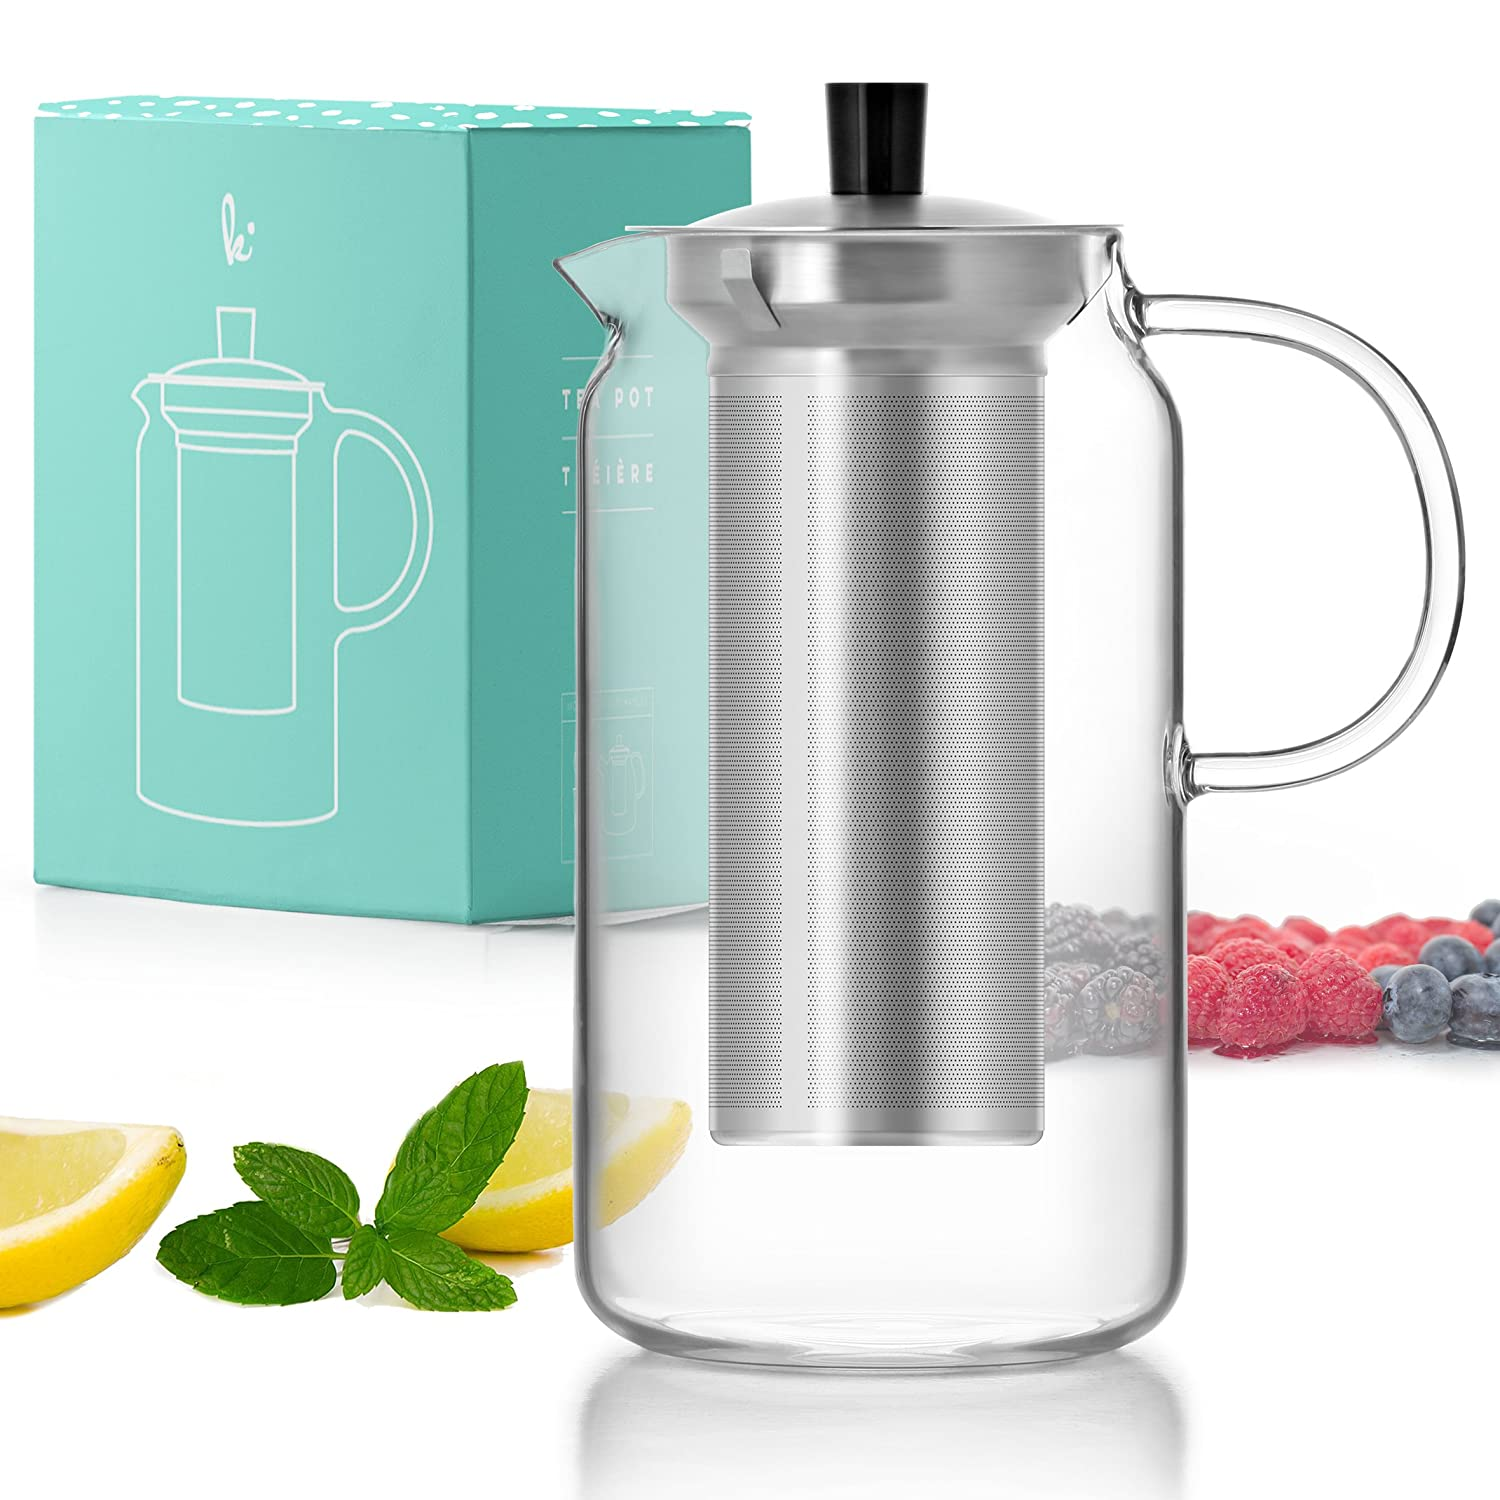 Glass Teapot Kettle with Infuser Set - Stovetop Warmer Tea Pot with Stainless Steel Strainer for Loose Leaf Tea (5 Cup, 40oz) Kitchables COMINHKPR131351